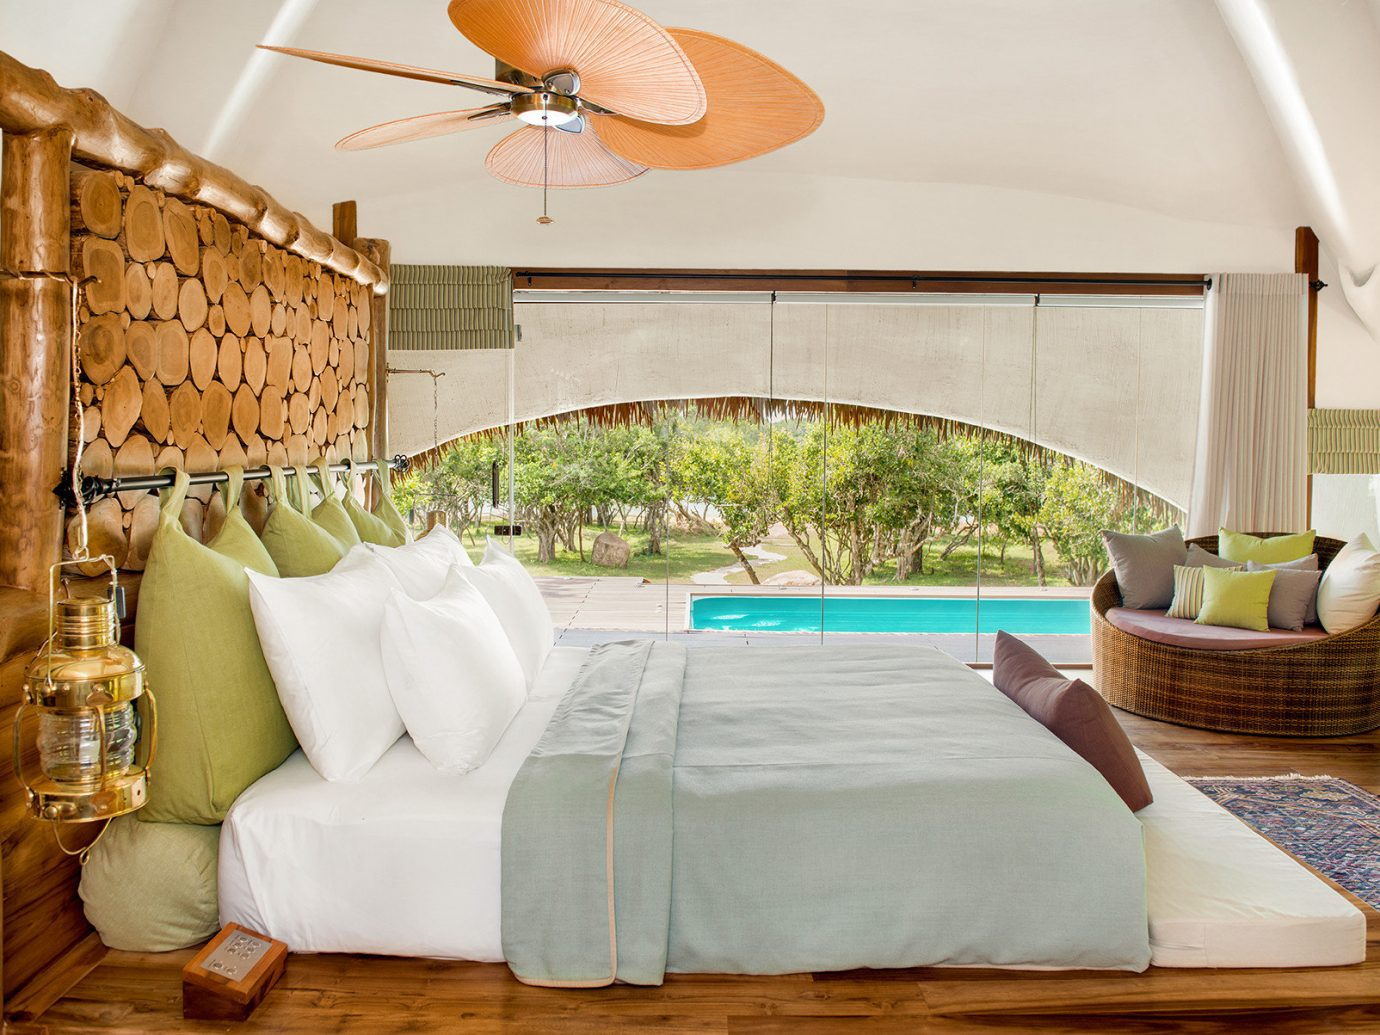 All-Inclusive Resorts Hotels Luxury Travel indoor room Living interior design Bedroom bed frame bed furniture home Suite estate ceiling wood real estate bed sheet house decorated